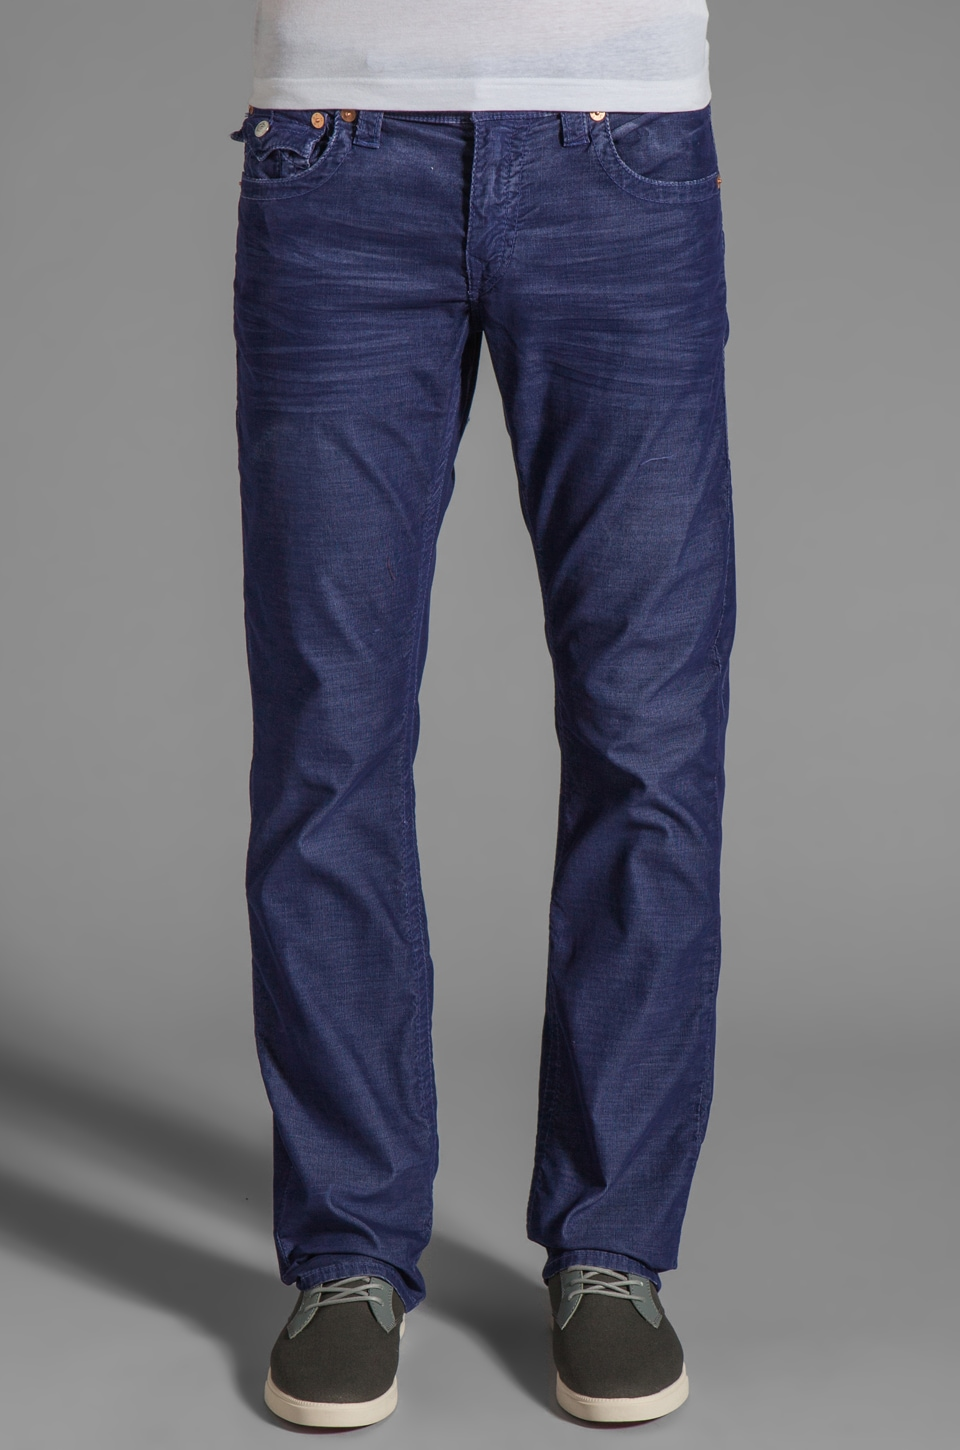 True Religion Ricky Corduroy Straight Leg in Azul